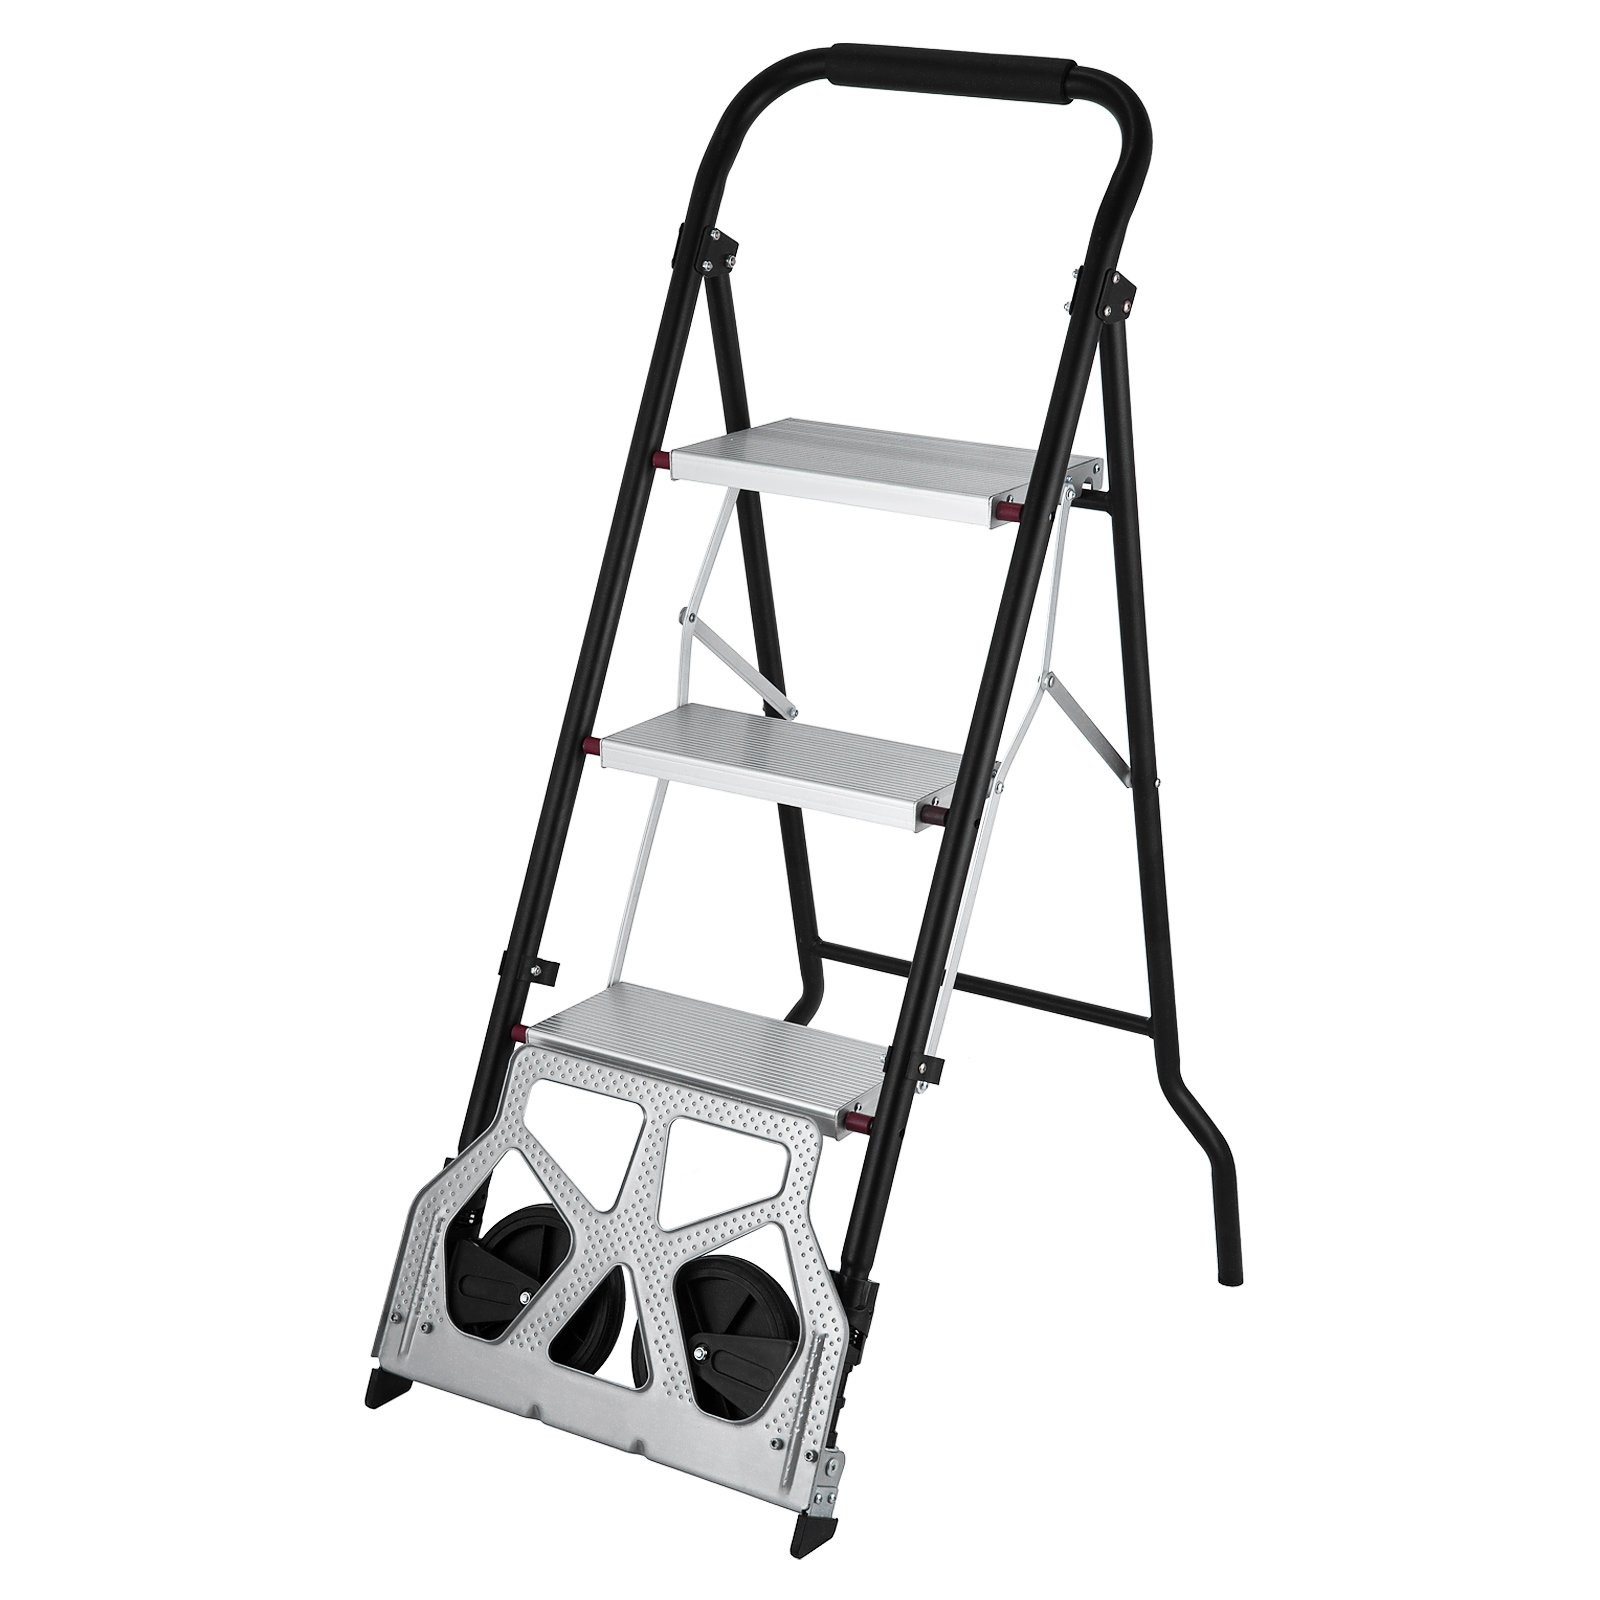 OrangeA 3-Steps Ladder Cart 2-in-1 Convertible Step Ladder Folding Hand Truck with Trolley by OrangeA (Image #1)